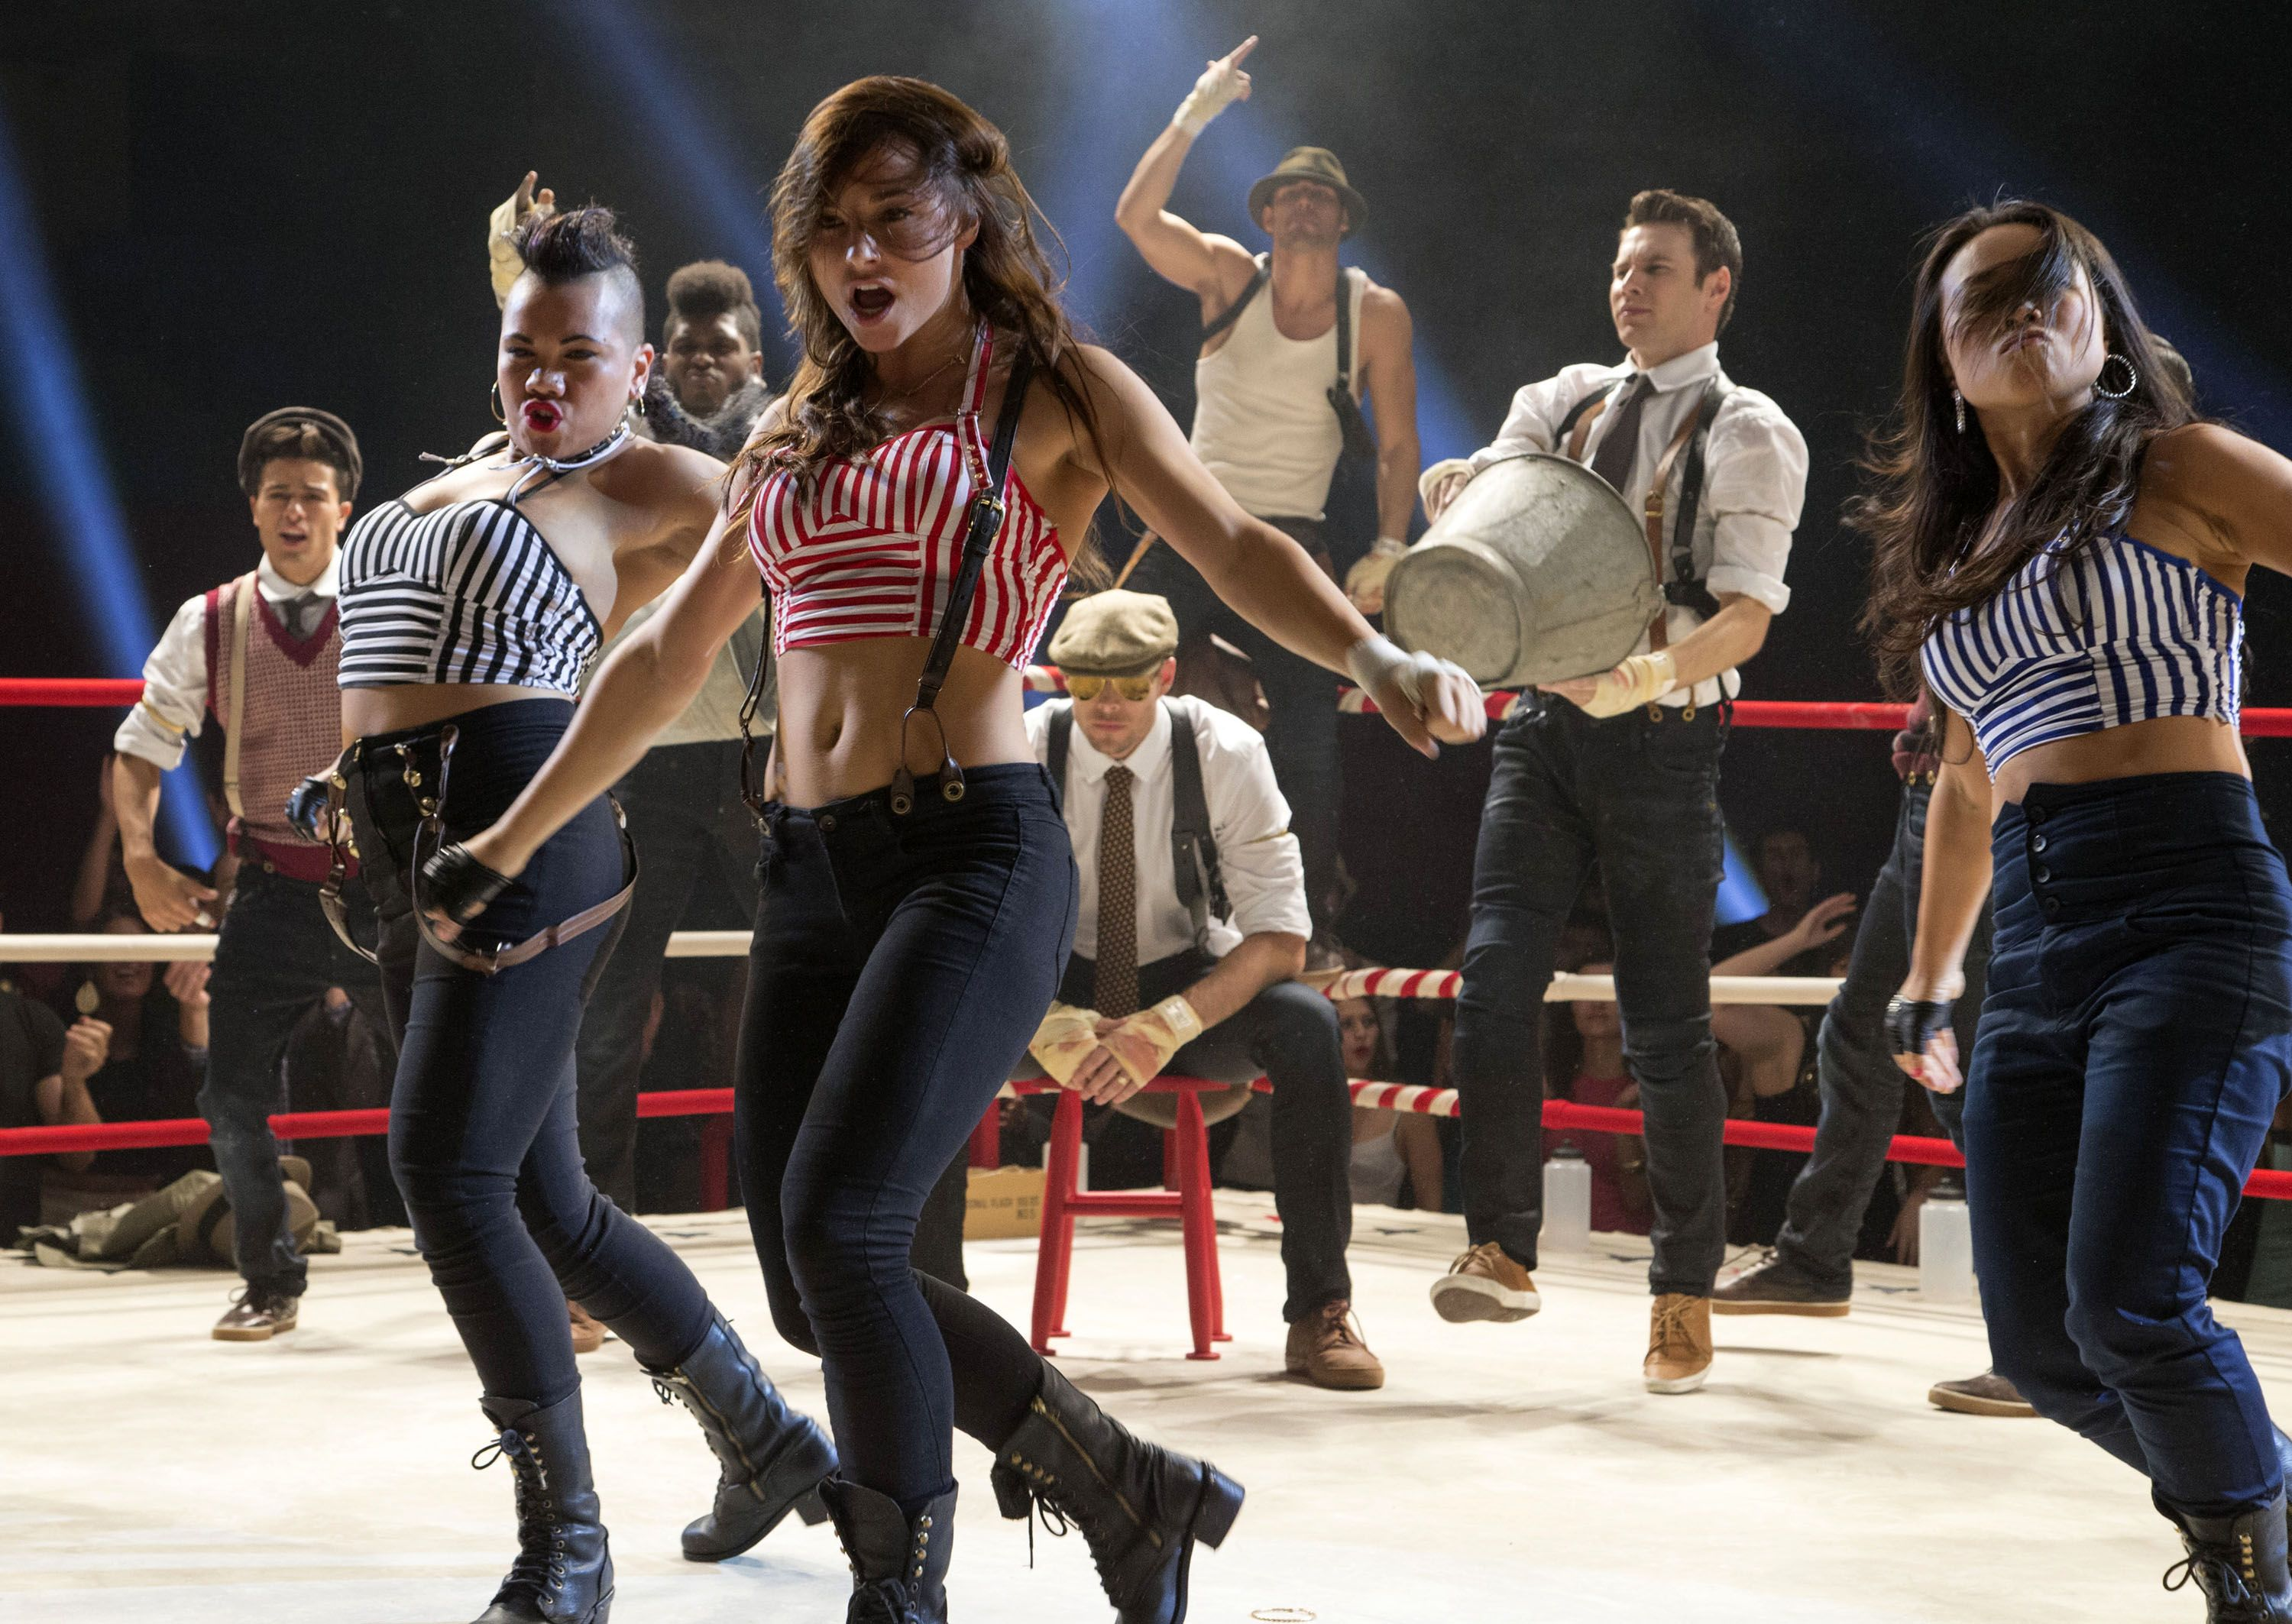 Step Up 5 Outfits Pesquisa Google Step Up Movies Step Up Revolution Step Up Dance